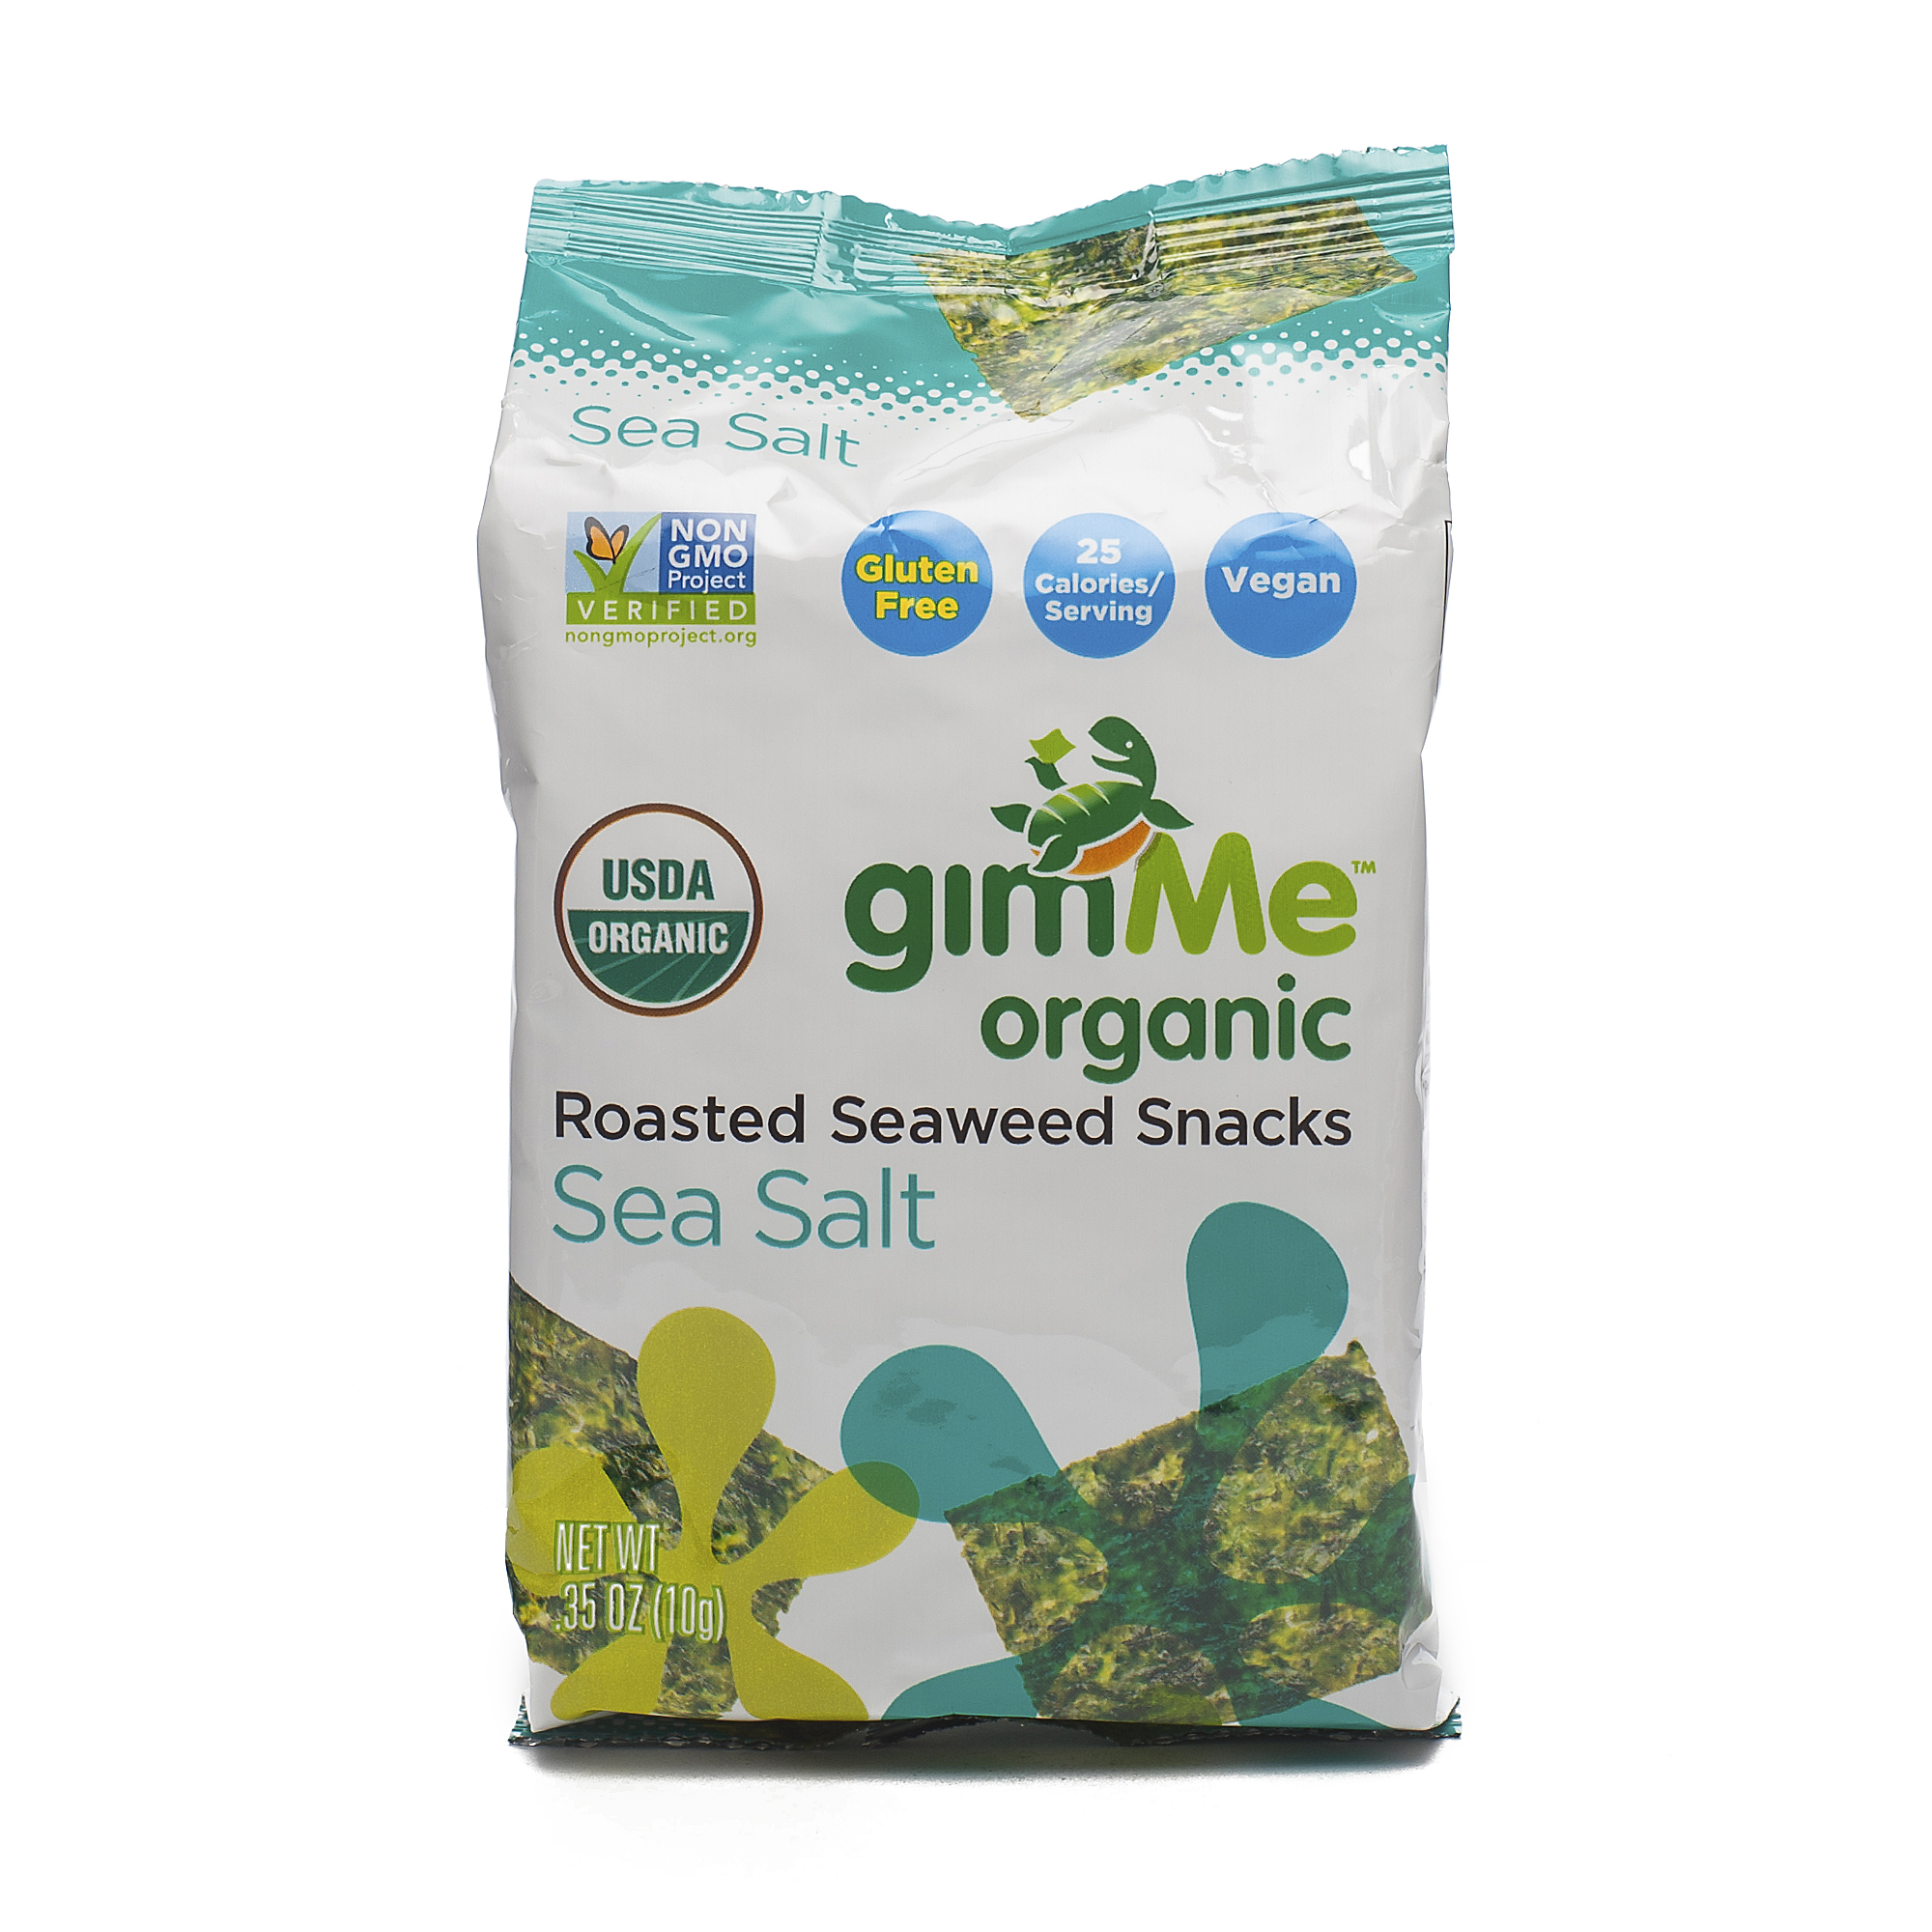 Organic Roasted Seaweed Snack By Gimme Thrive Market